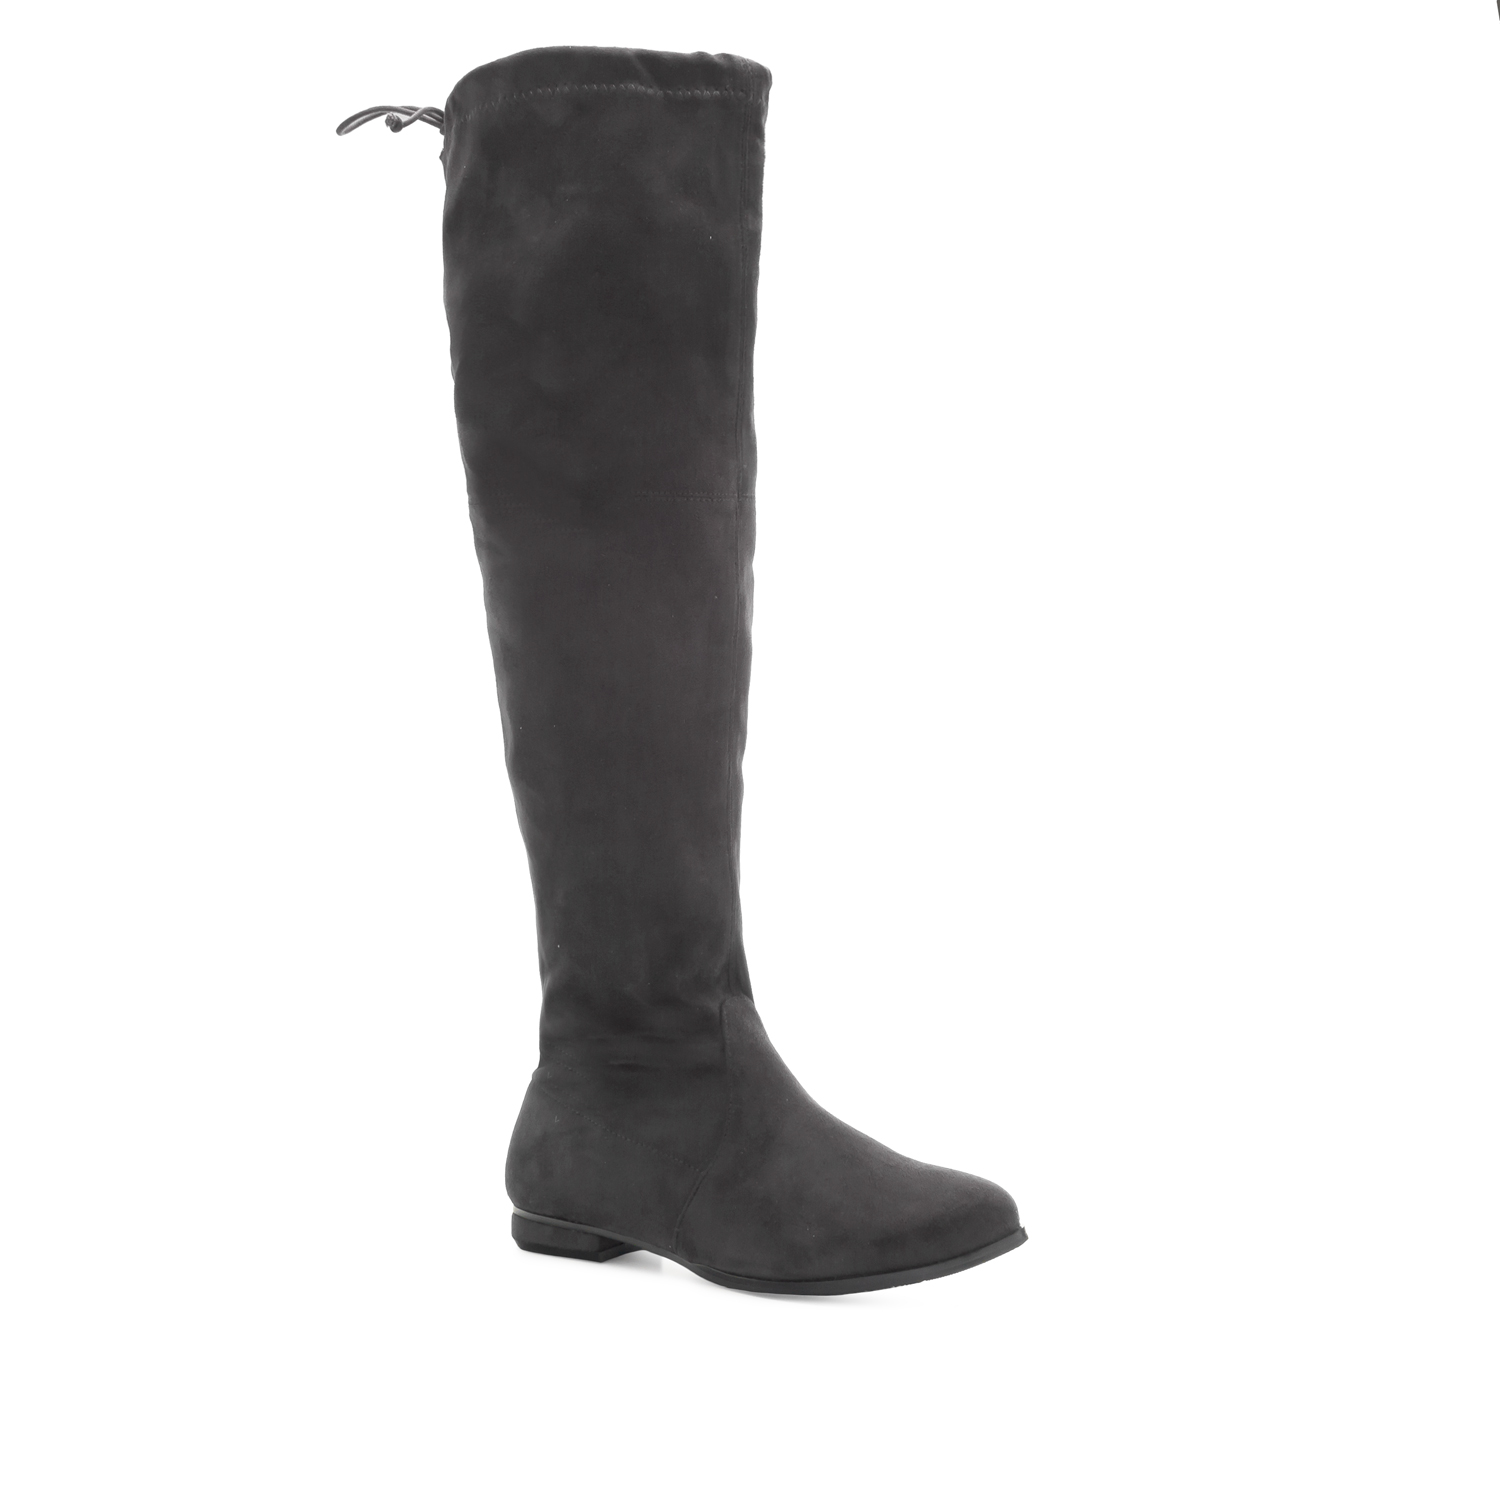 Thigh High Boots in Grey Suede